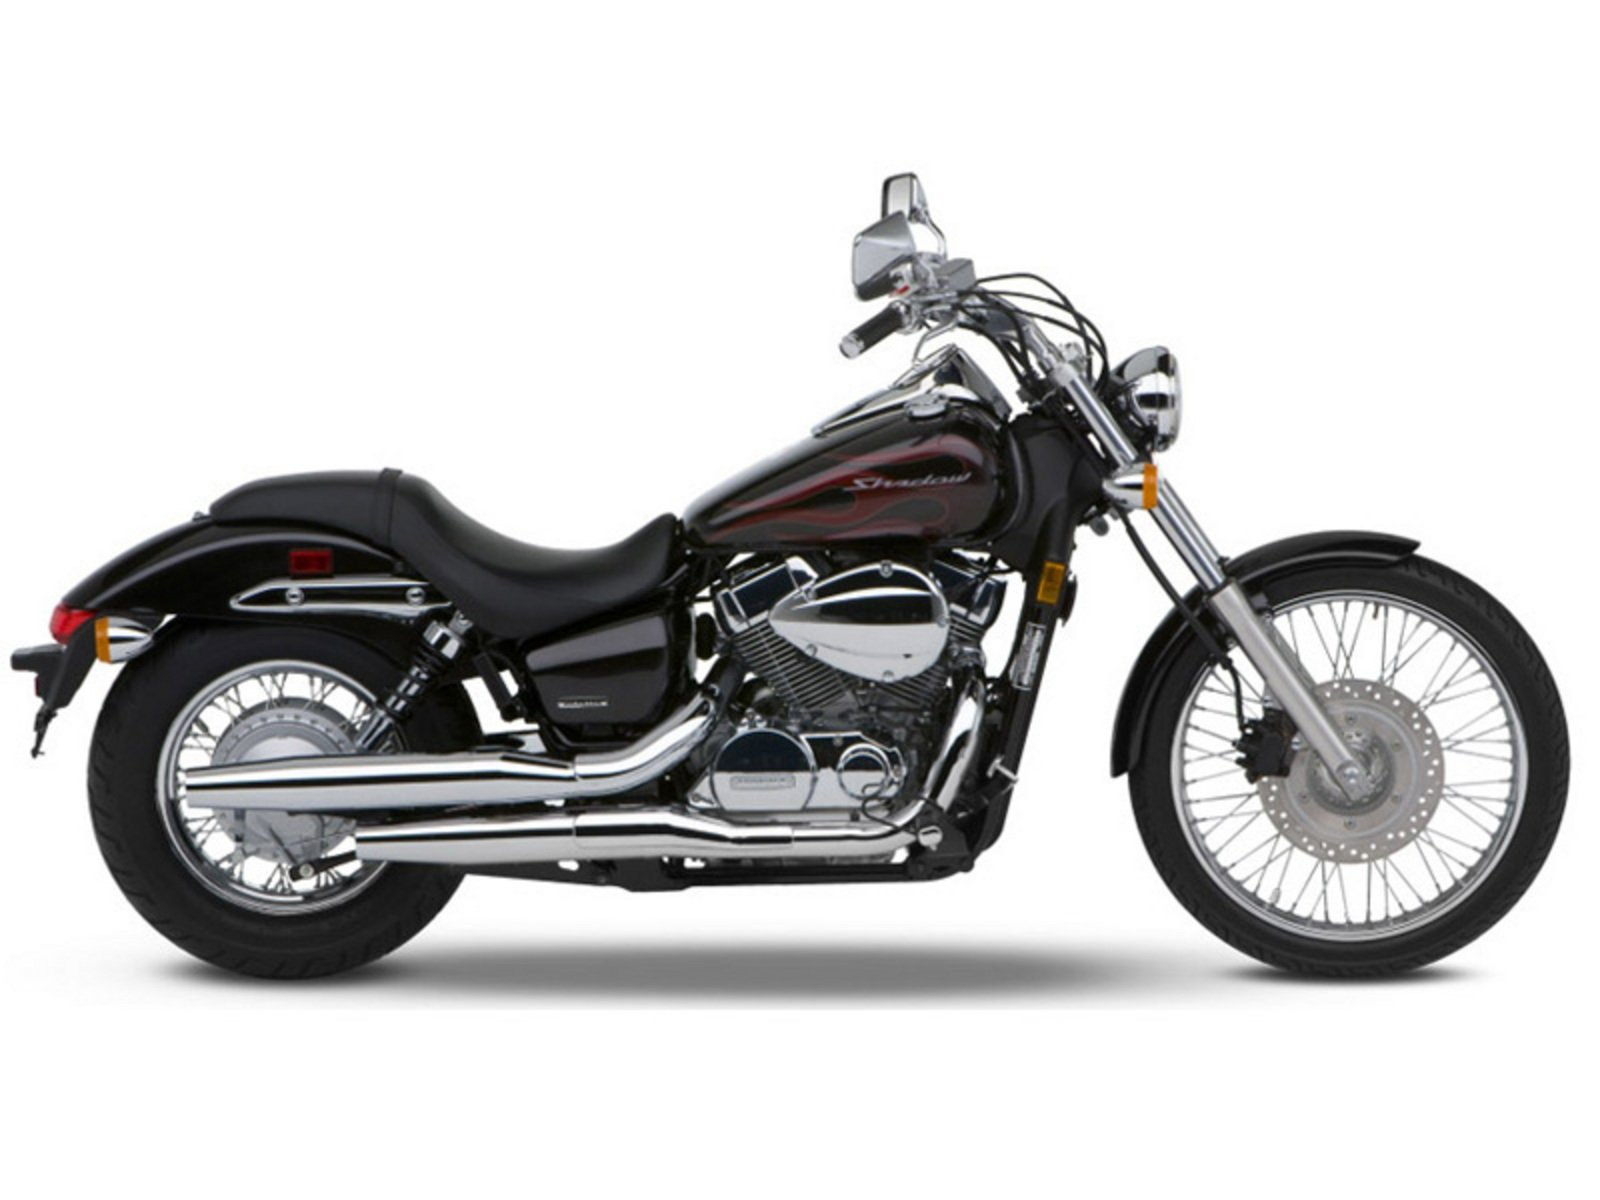 2014 honda shadow spirit 750 review top speed. Black Bedroom Furniture Sets. Home Design Ideas